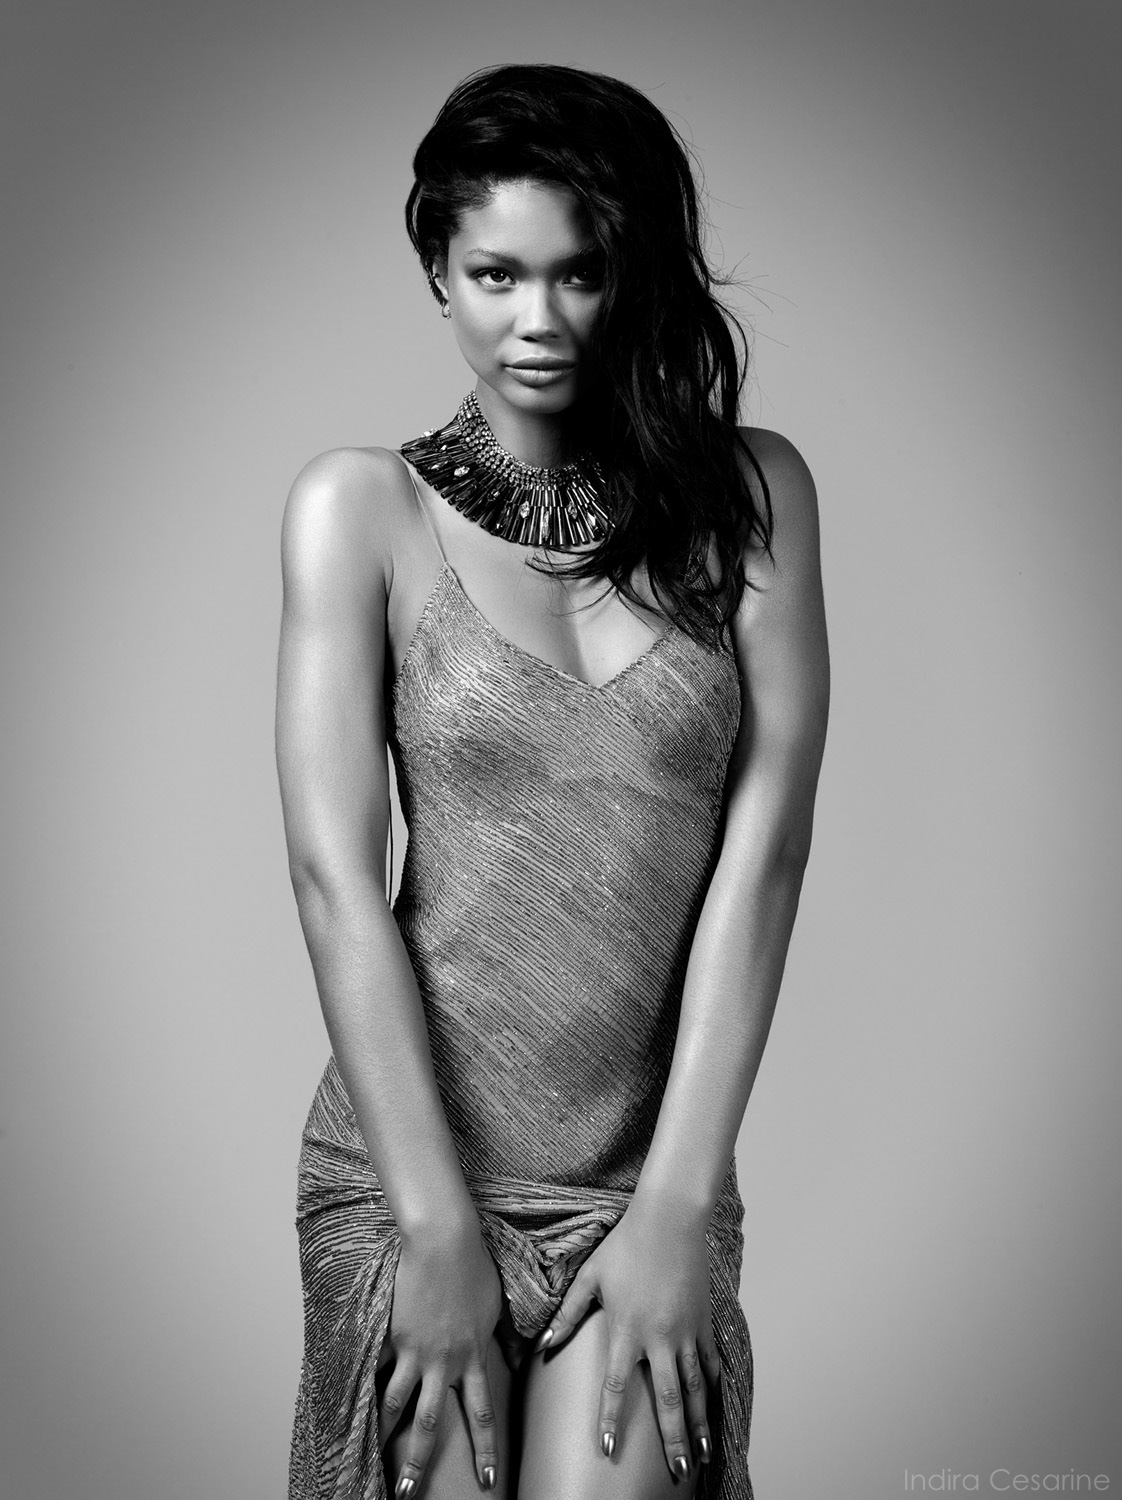 Chanel-Iman-Photography-by-Indira-Cesarine-014.jpg